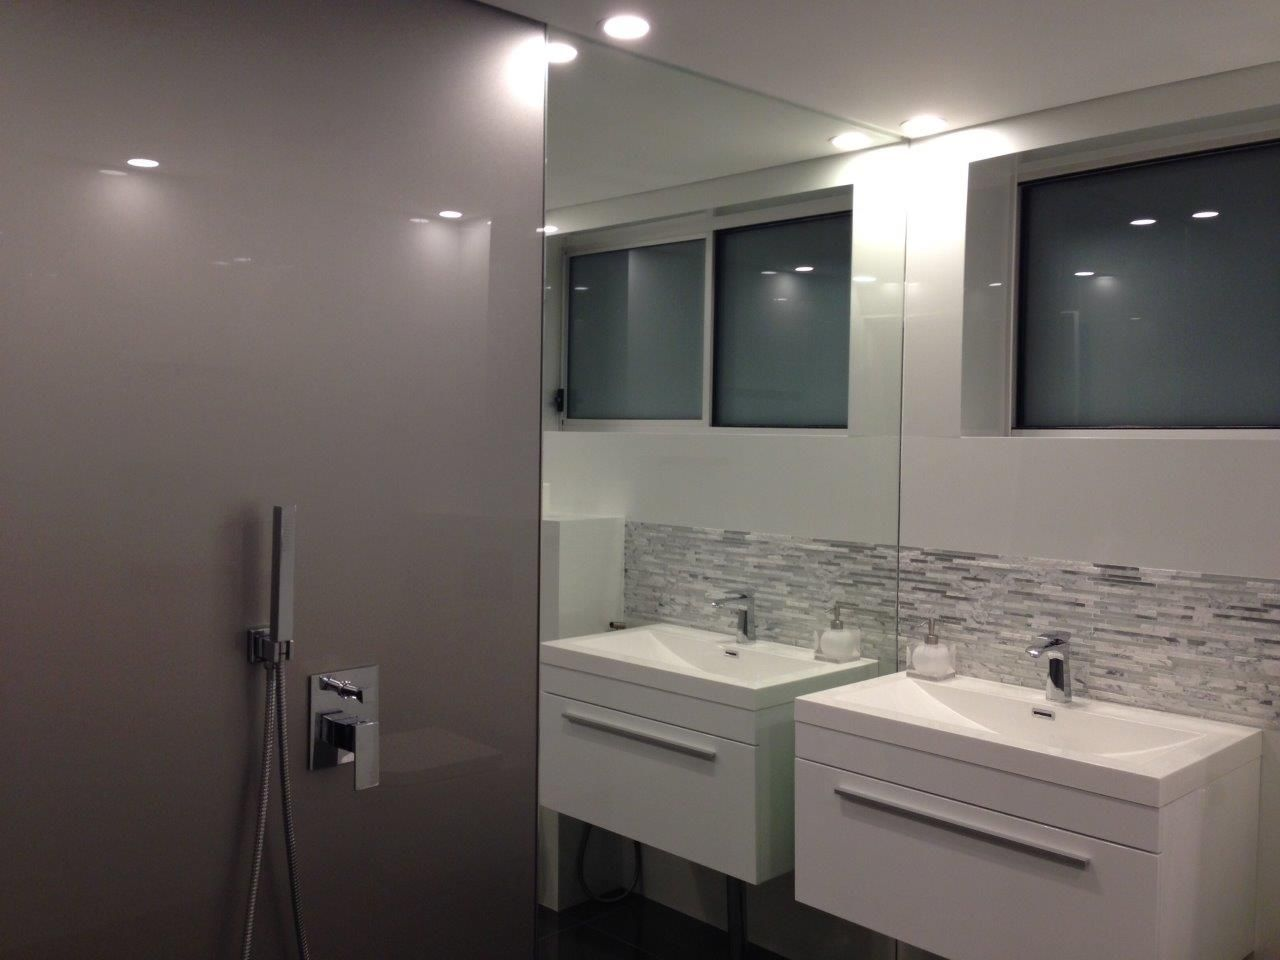 acrylic panels for bathroom walls%0A Bathroom  Shower In Acrylic  Walls ind Metaline And Tiles around the basin  and floor